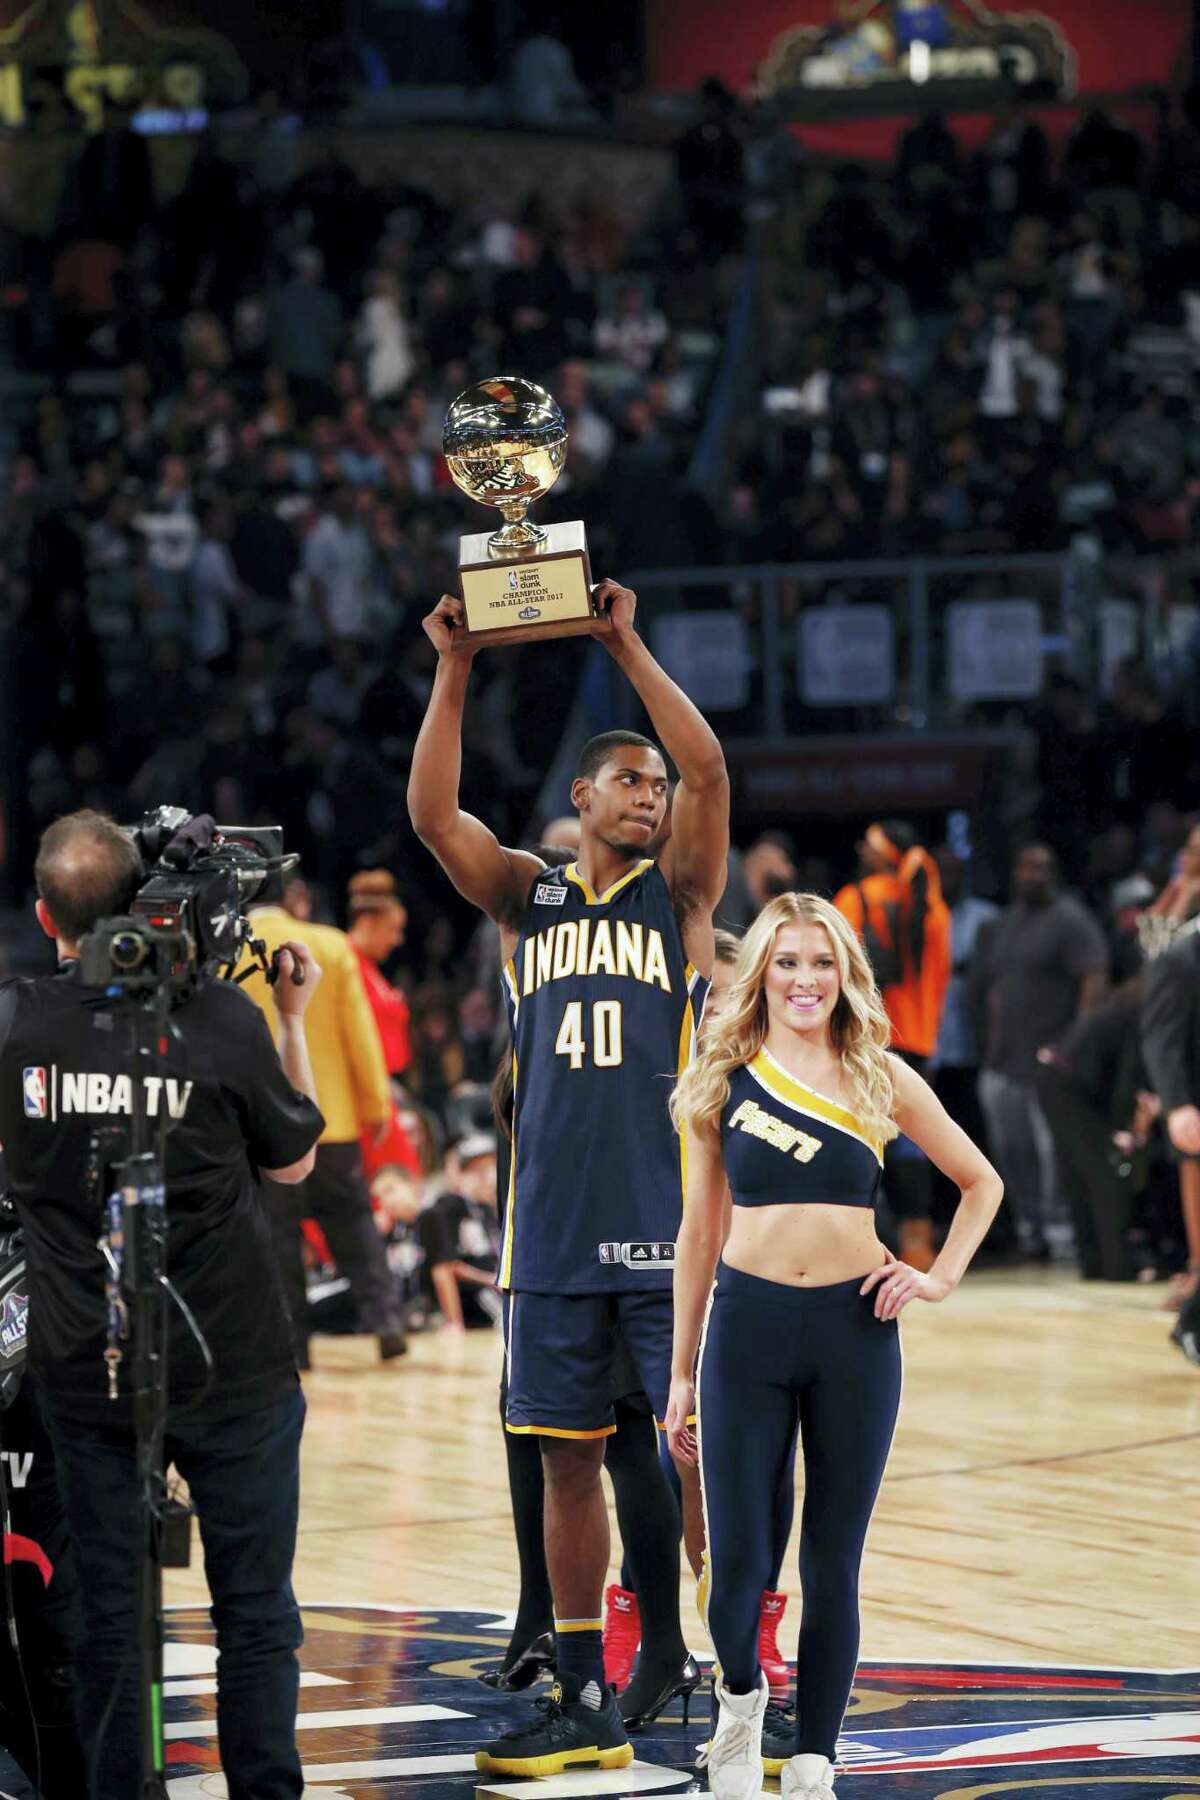 Indiana pacers Glenn Robinson III holds up his trophy after winning the slam dunk contest during NBA All-Star Saturday Night events in New Orleans, Saturday, Feb. 18, 2017. (AP Photo/Gerald Herbert)